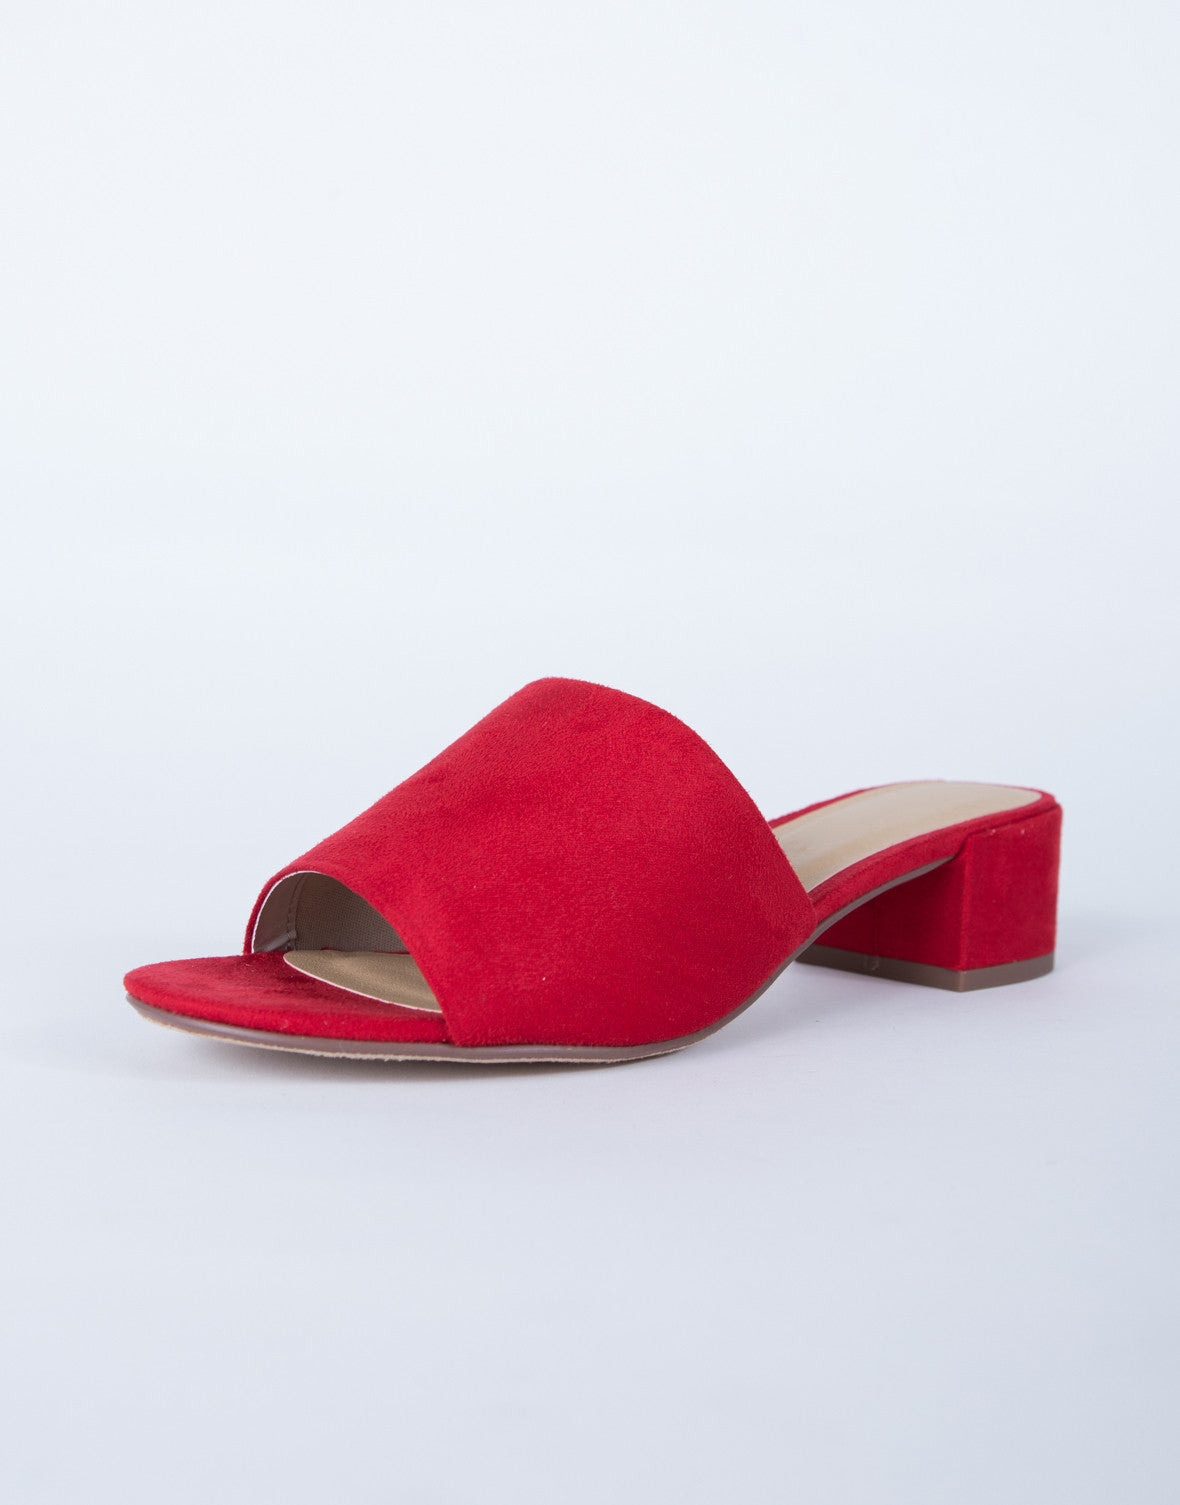 running shoes cost charm pretty cool Suede Mule Sandals - Faux Suede Mules - Red Mule Sandals - Black ...